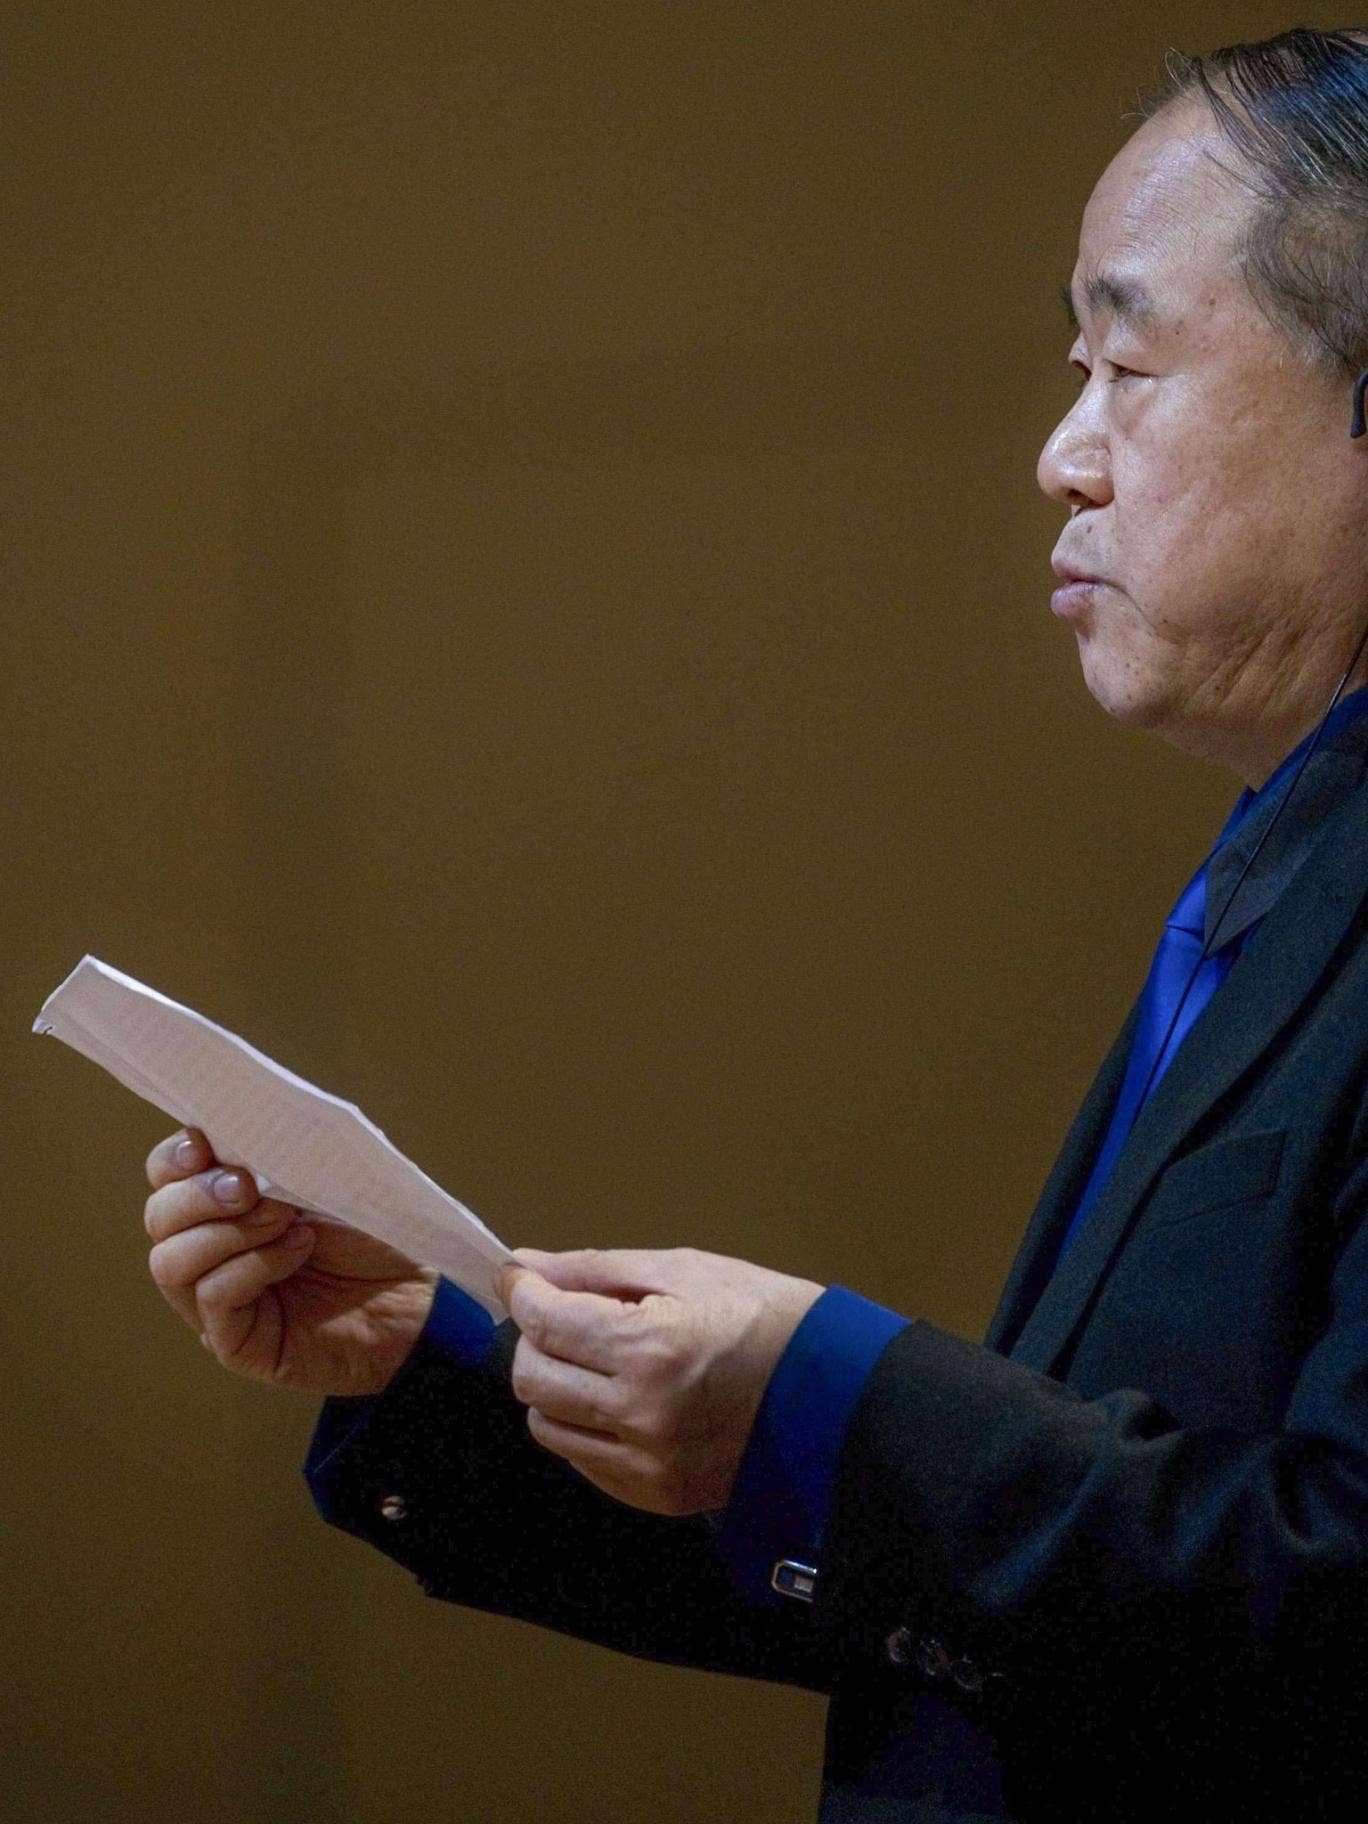 Mo Yan: Nobel laureate whose work is lost amid political argument